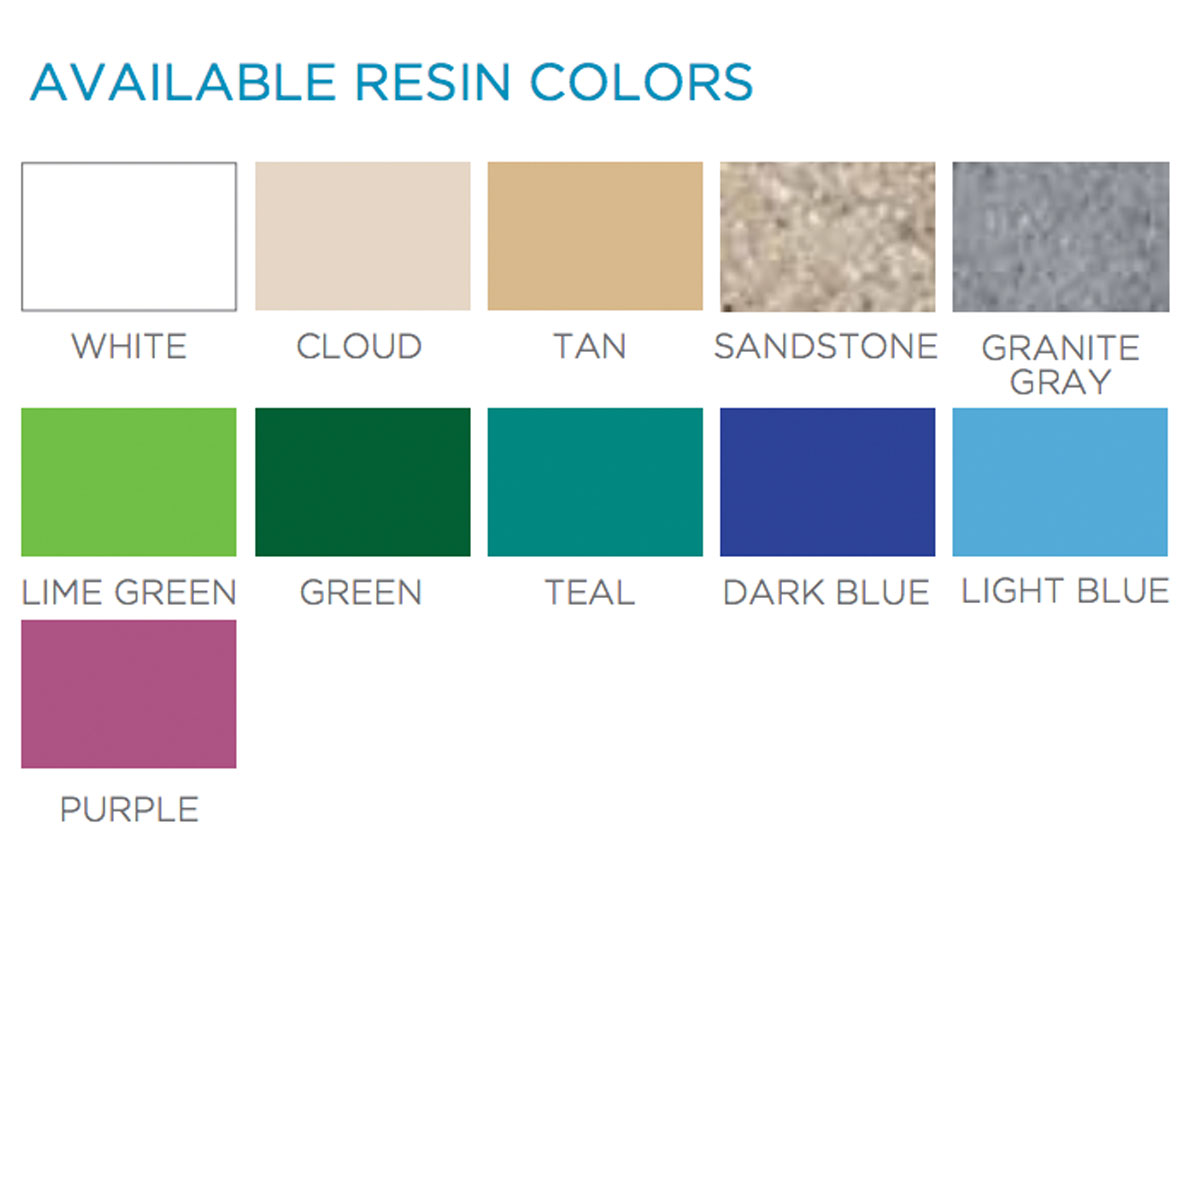 available-resin-colors.jpg